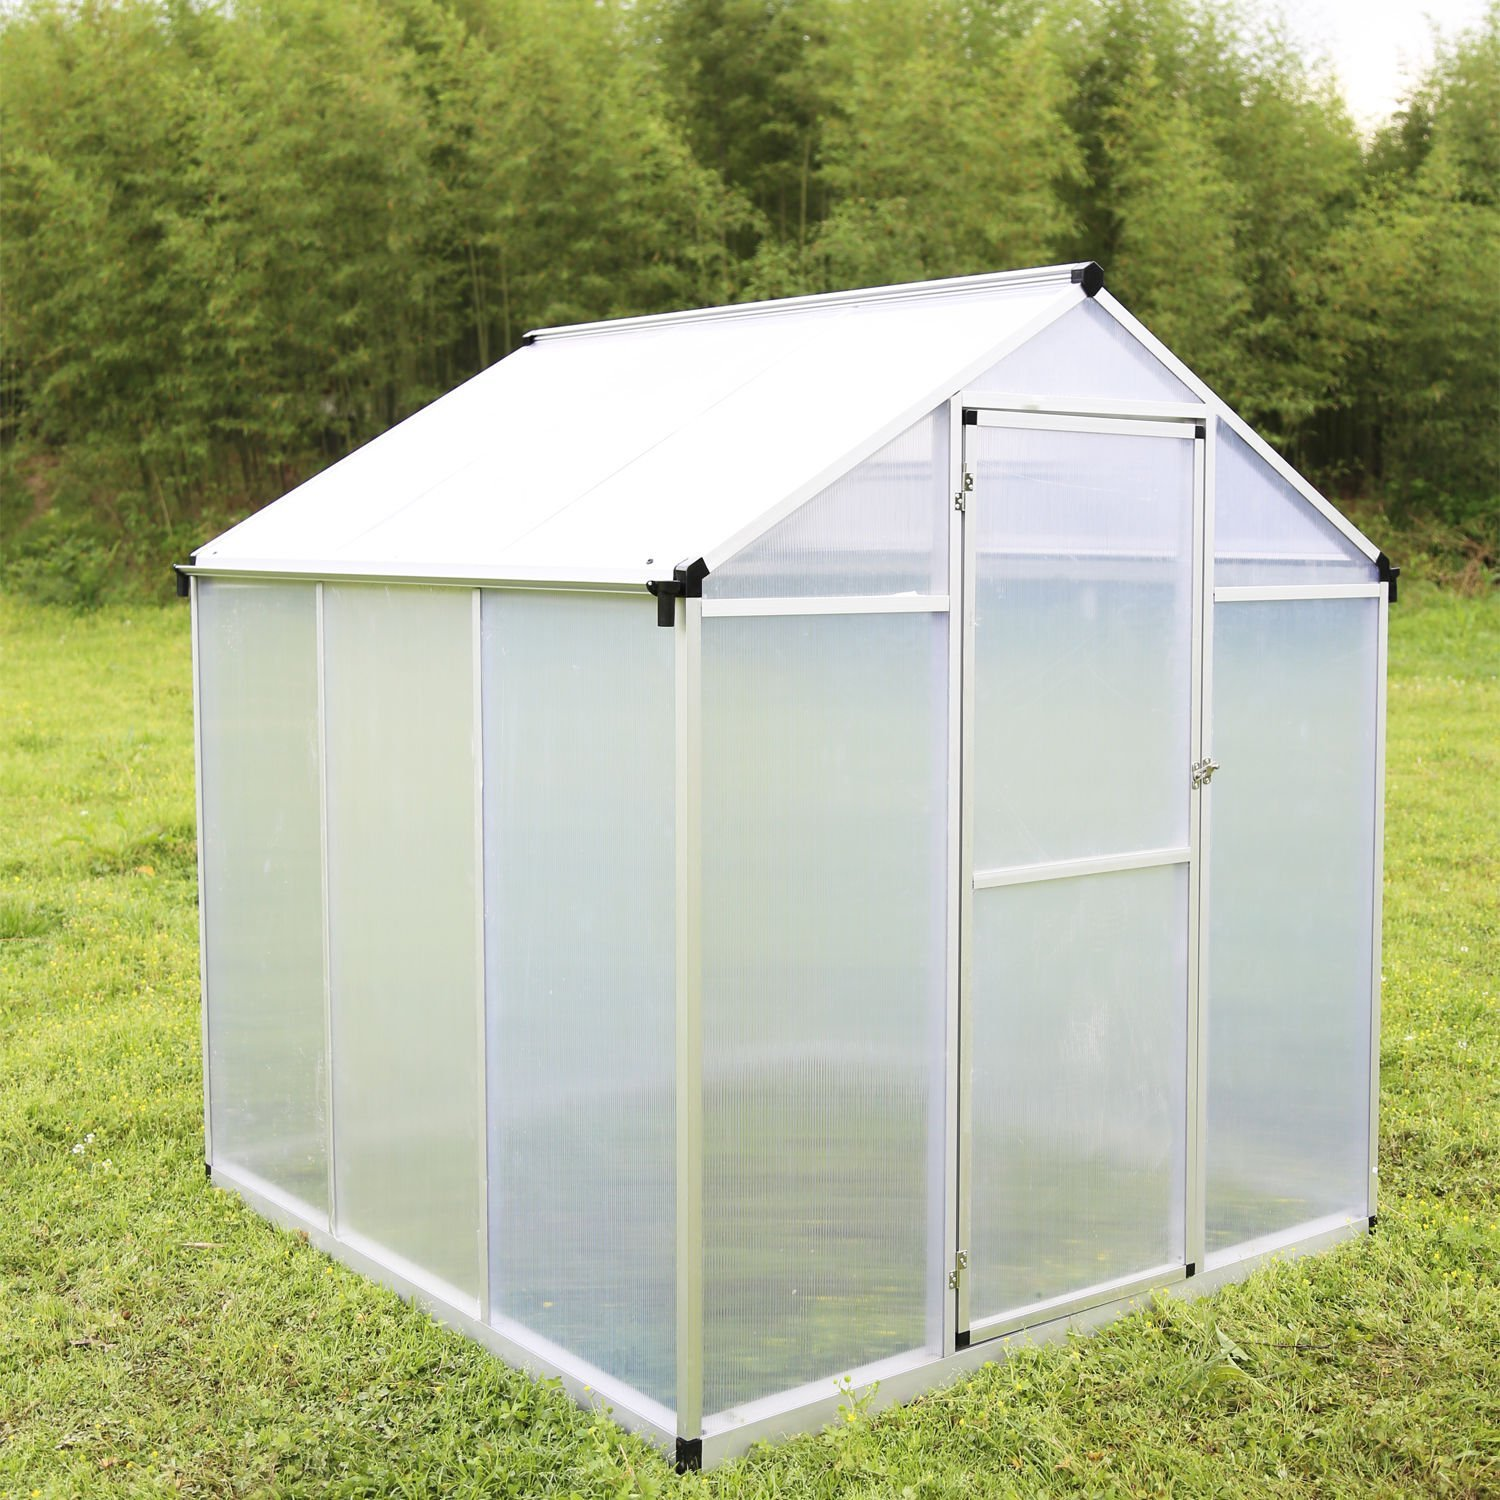 New 6'x6' Aluminum Garden Greenhouse Polycarbonate Roof Vent Walk-in Large Nursery